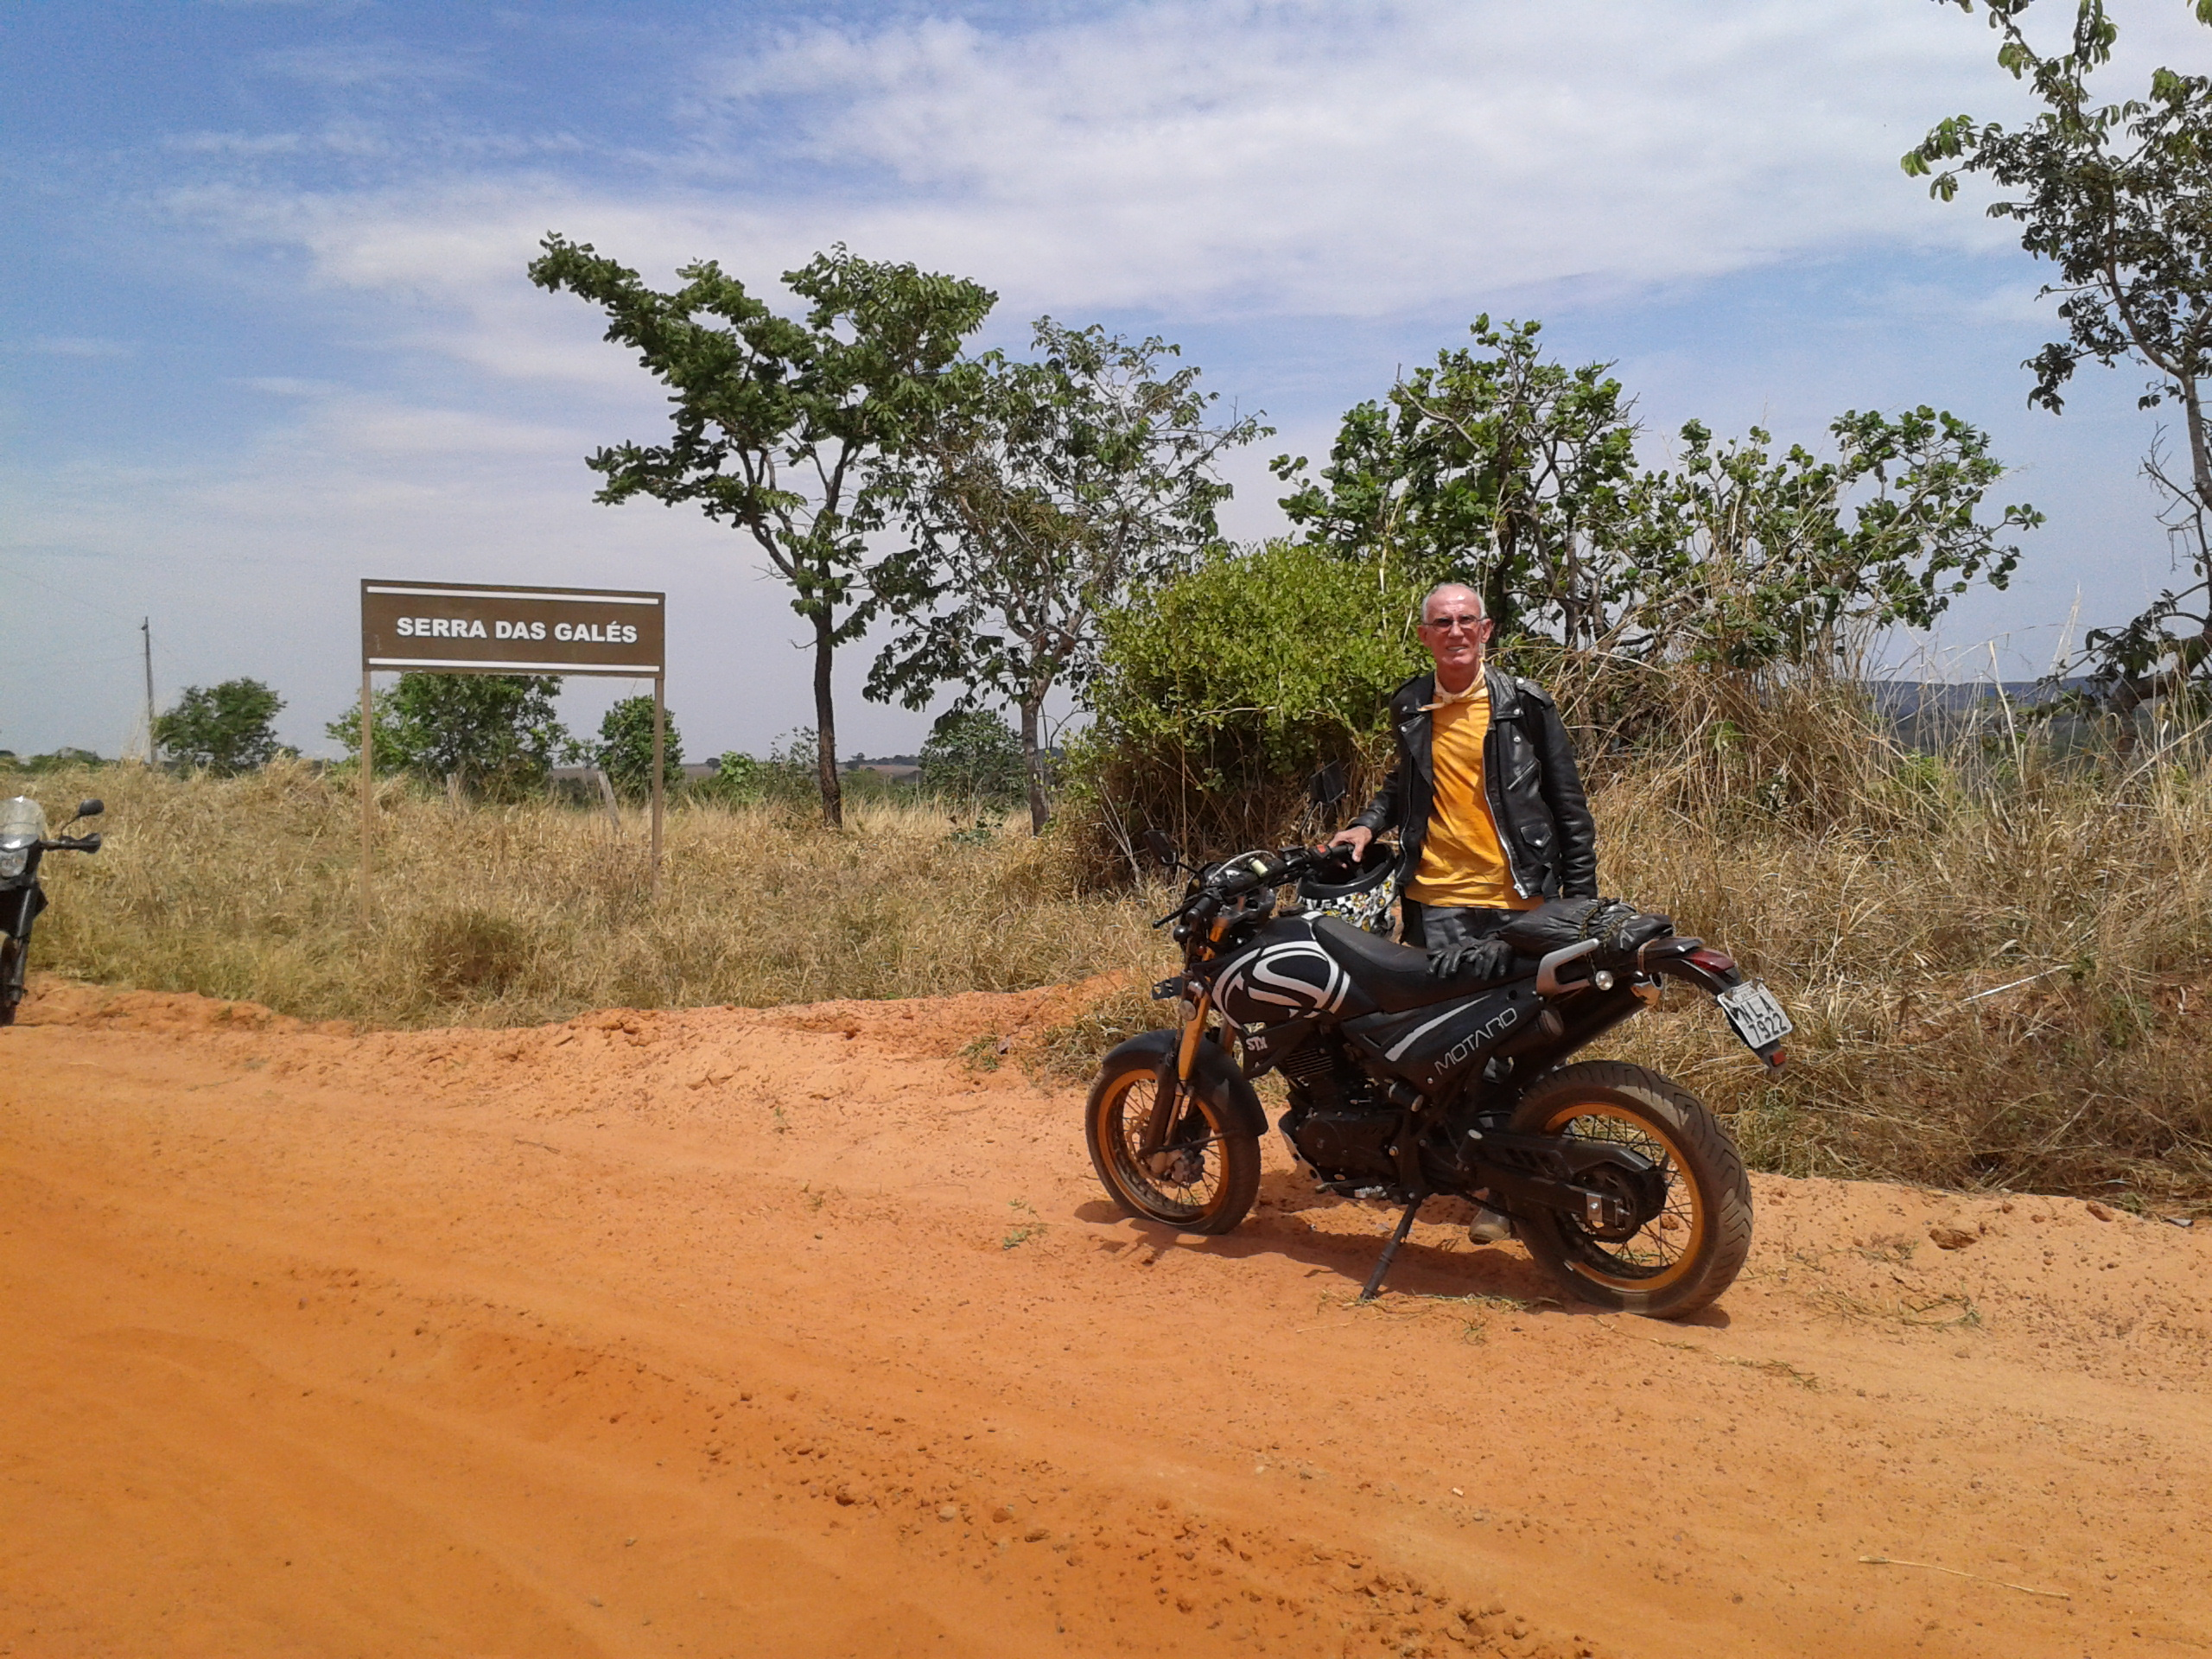 Arriving at the entrance of Serra das Galés Sunday morning, the 11th of October, 2015. Paraúna - GO- BRAZIL.